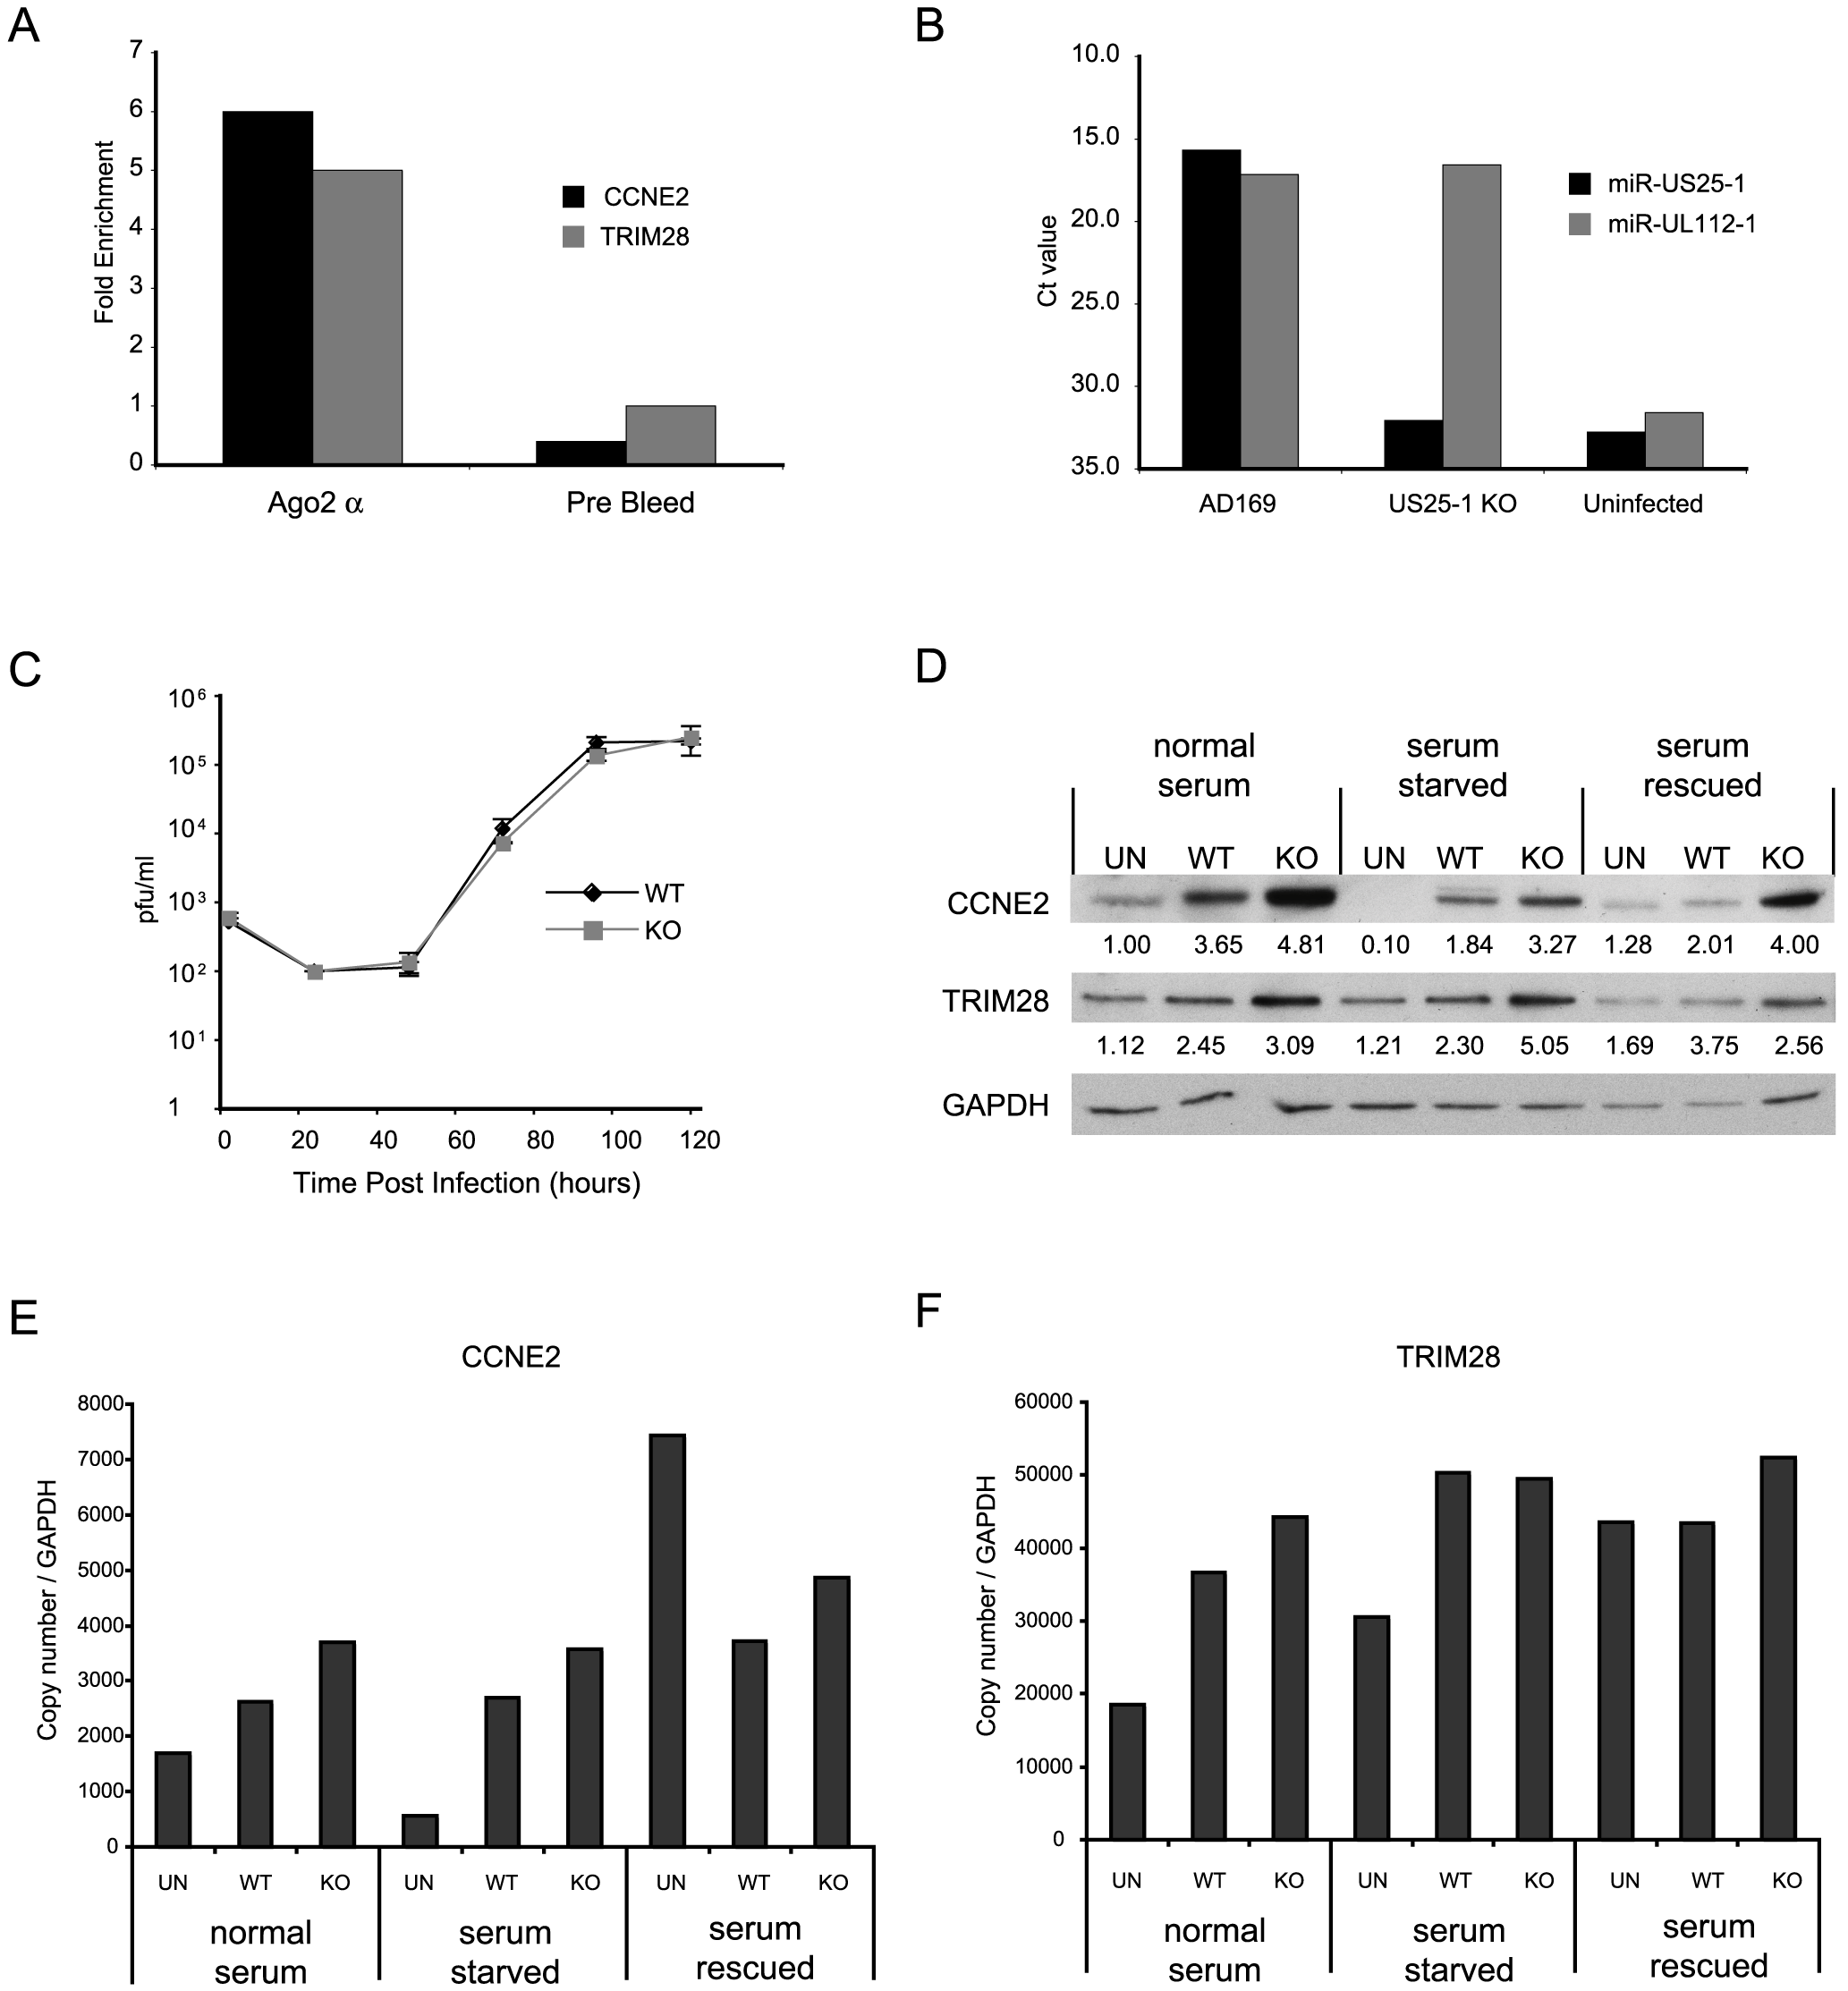 miR-US25-1 targets 5′UTR's in context of viral infection.